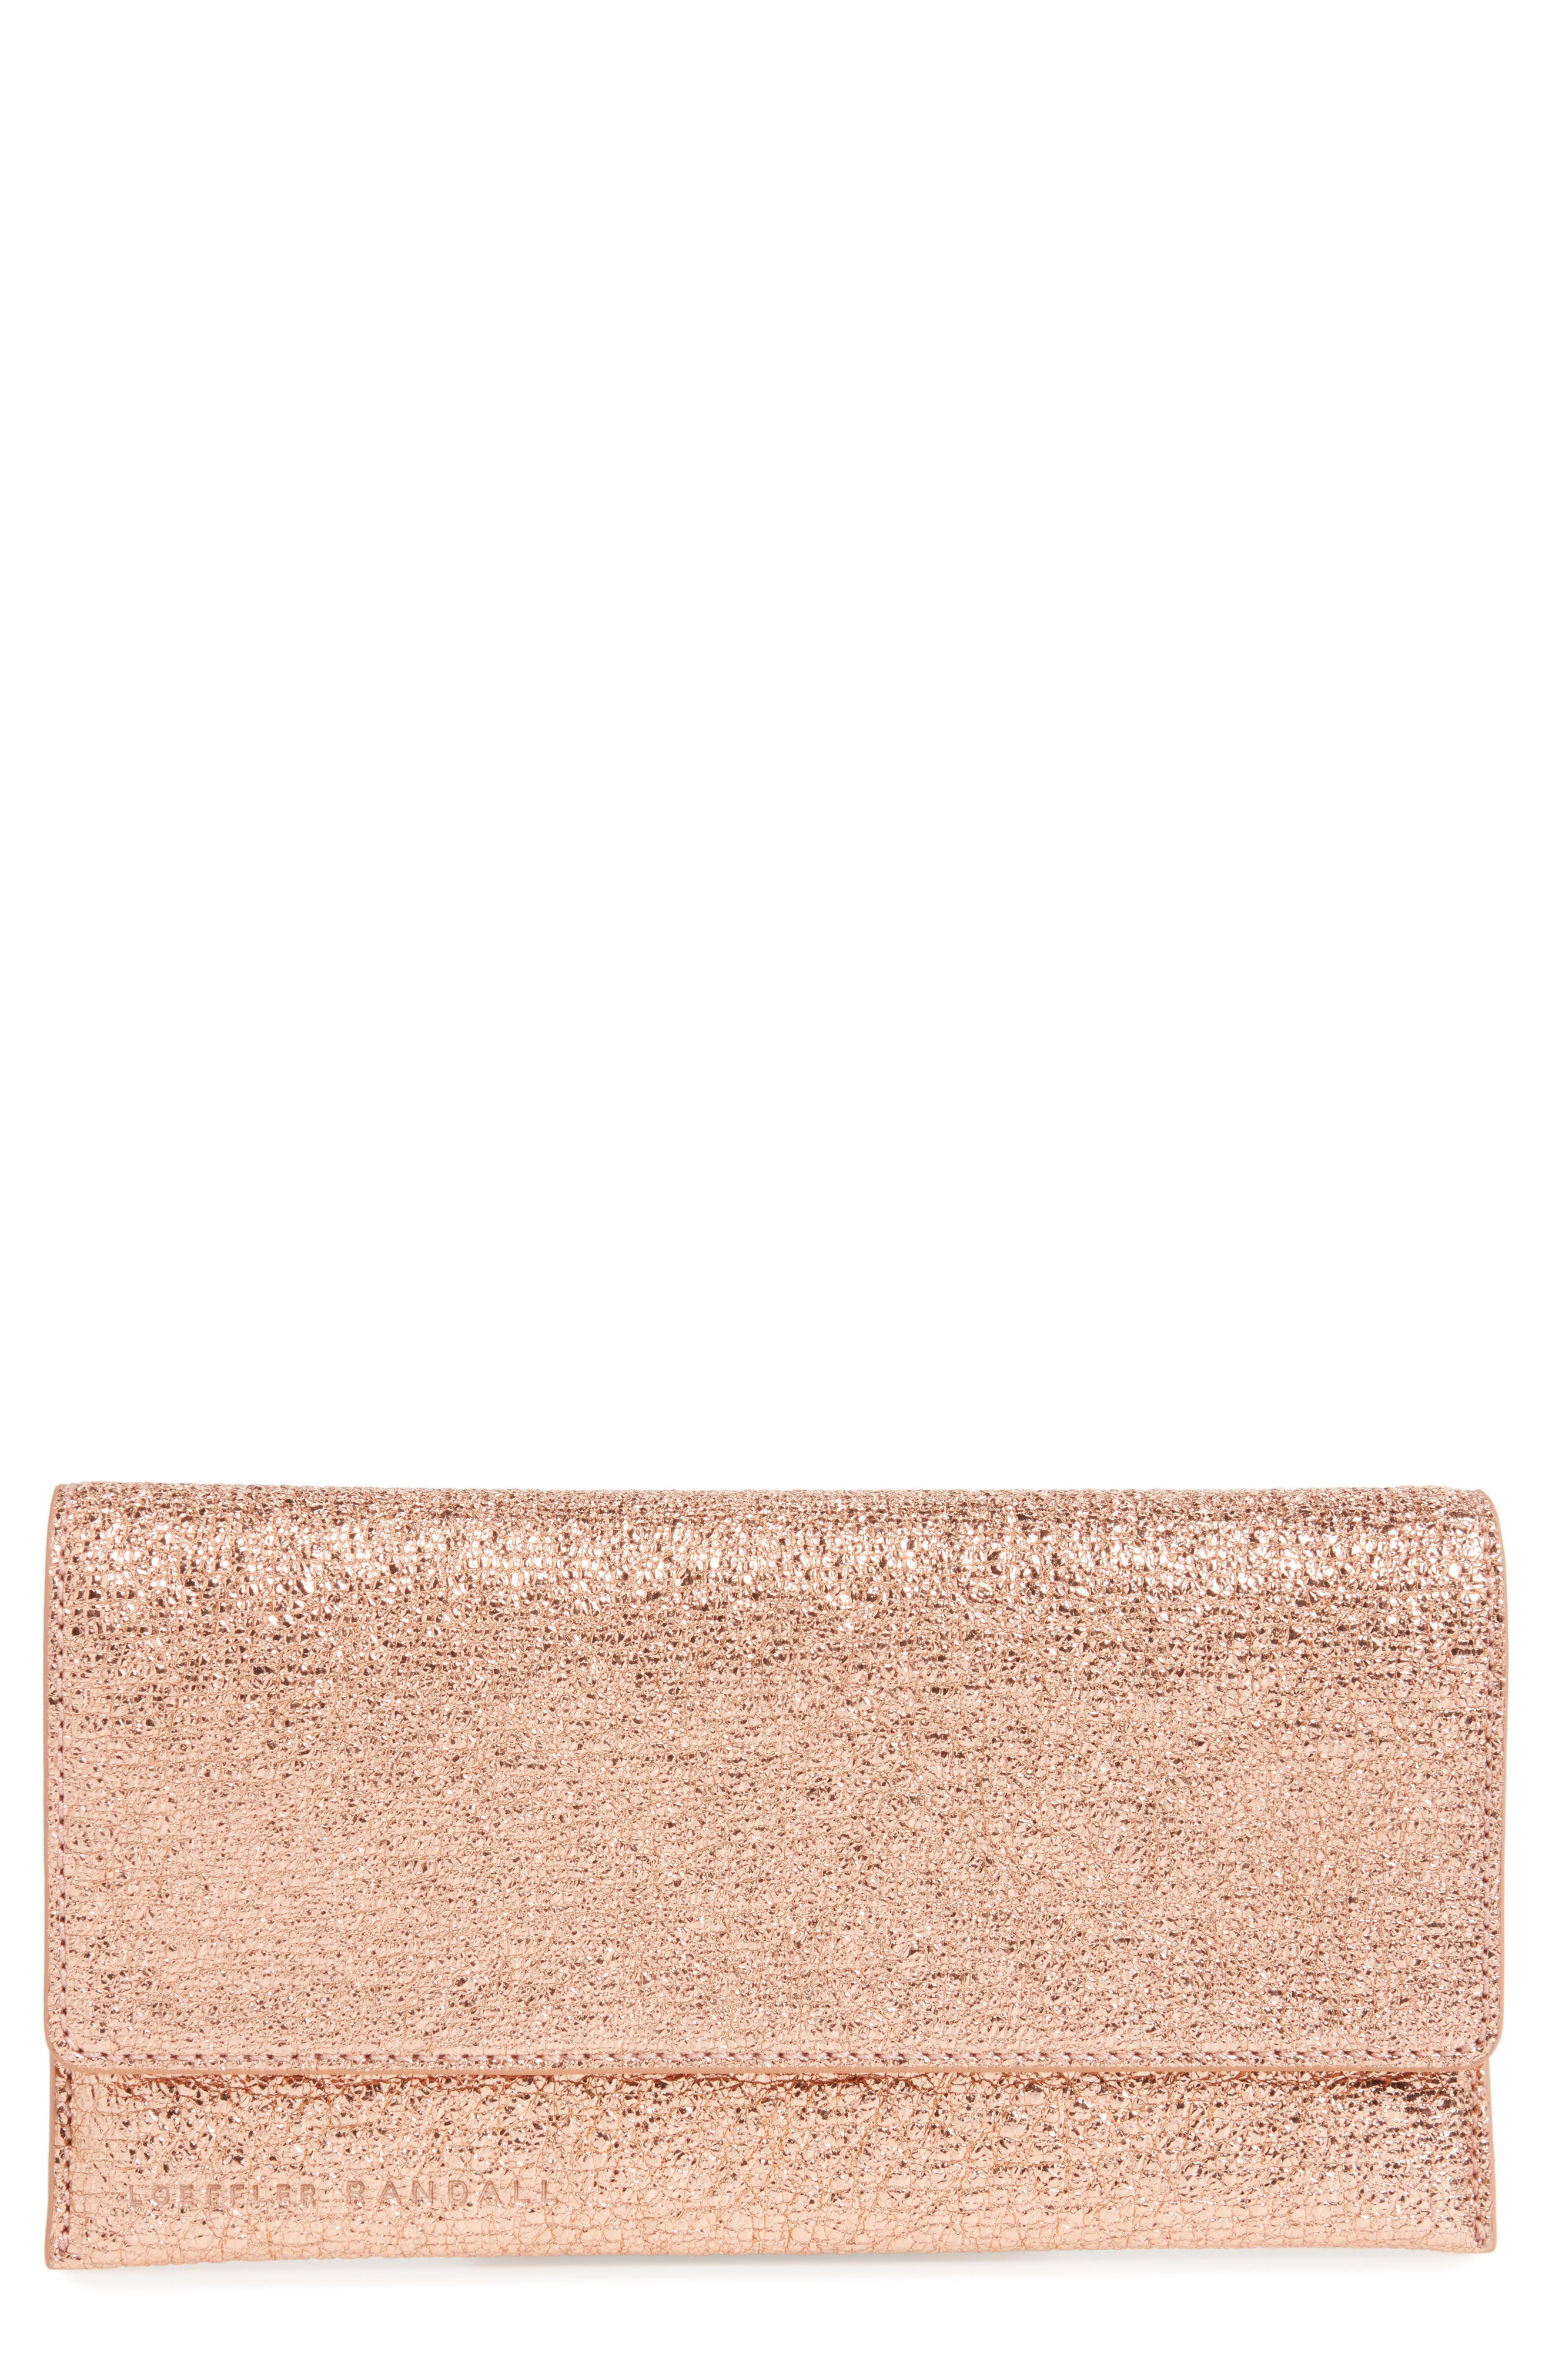 Everything Leather Wallet,                             Main thumbnail 1, color,